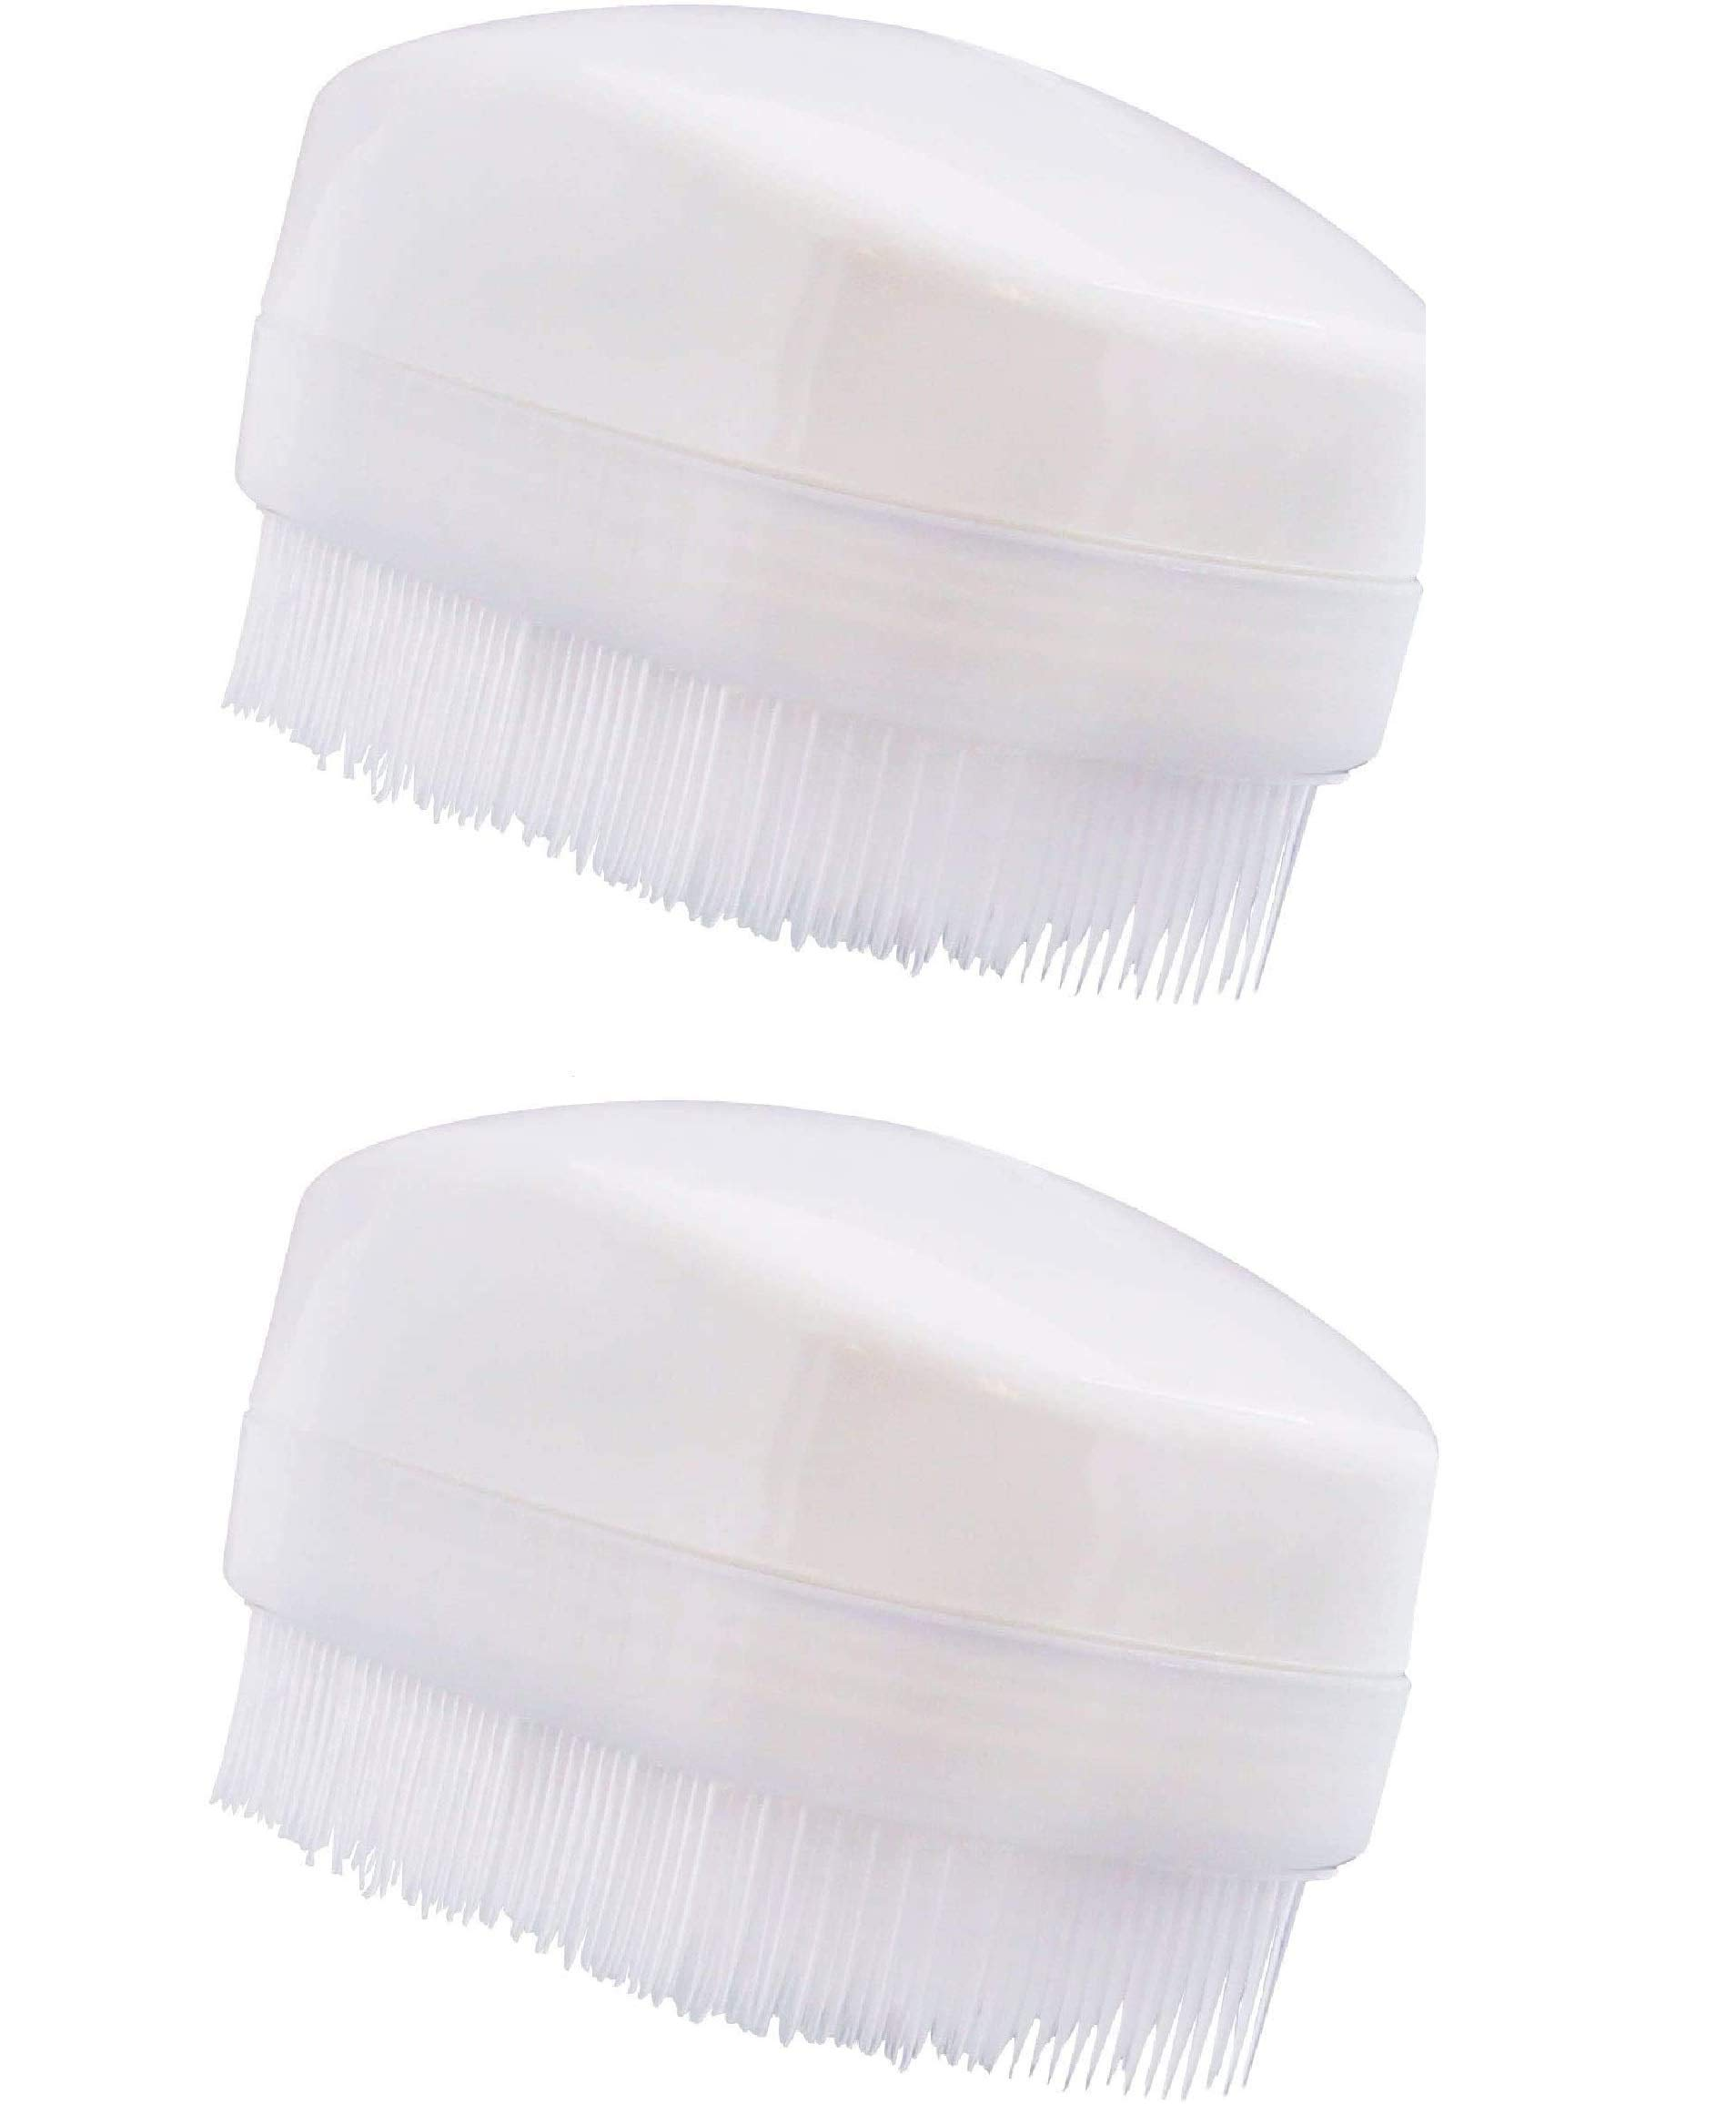 Wilbarger Therapy Brush, 2 Pack – Therapressure Brush for Occupational Therapy for Sensory Brushing – Designed by Patricia Wilbarger – Use as Part of the Wilbarger Brushing Protocol